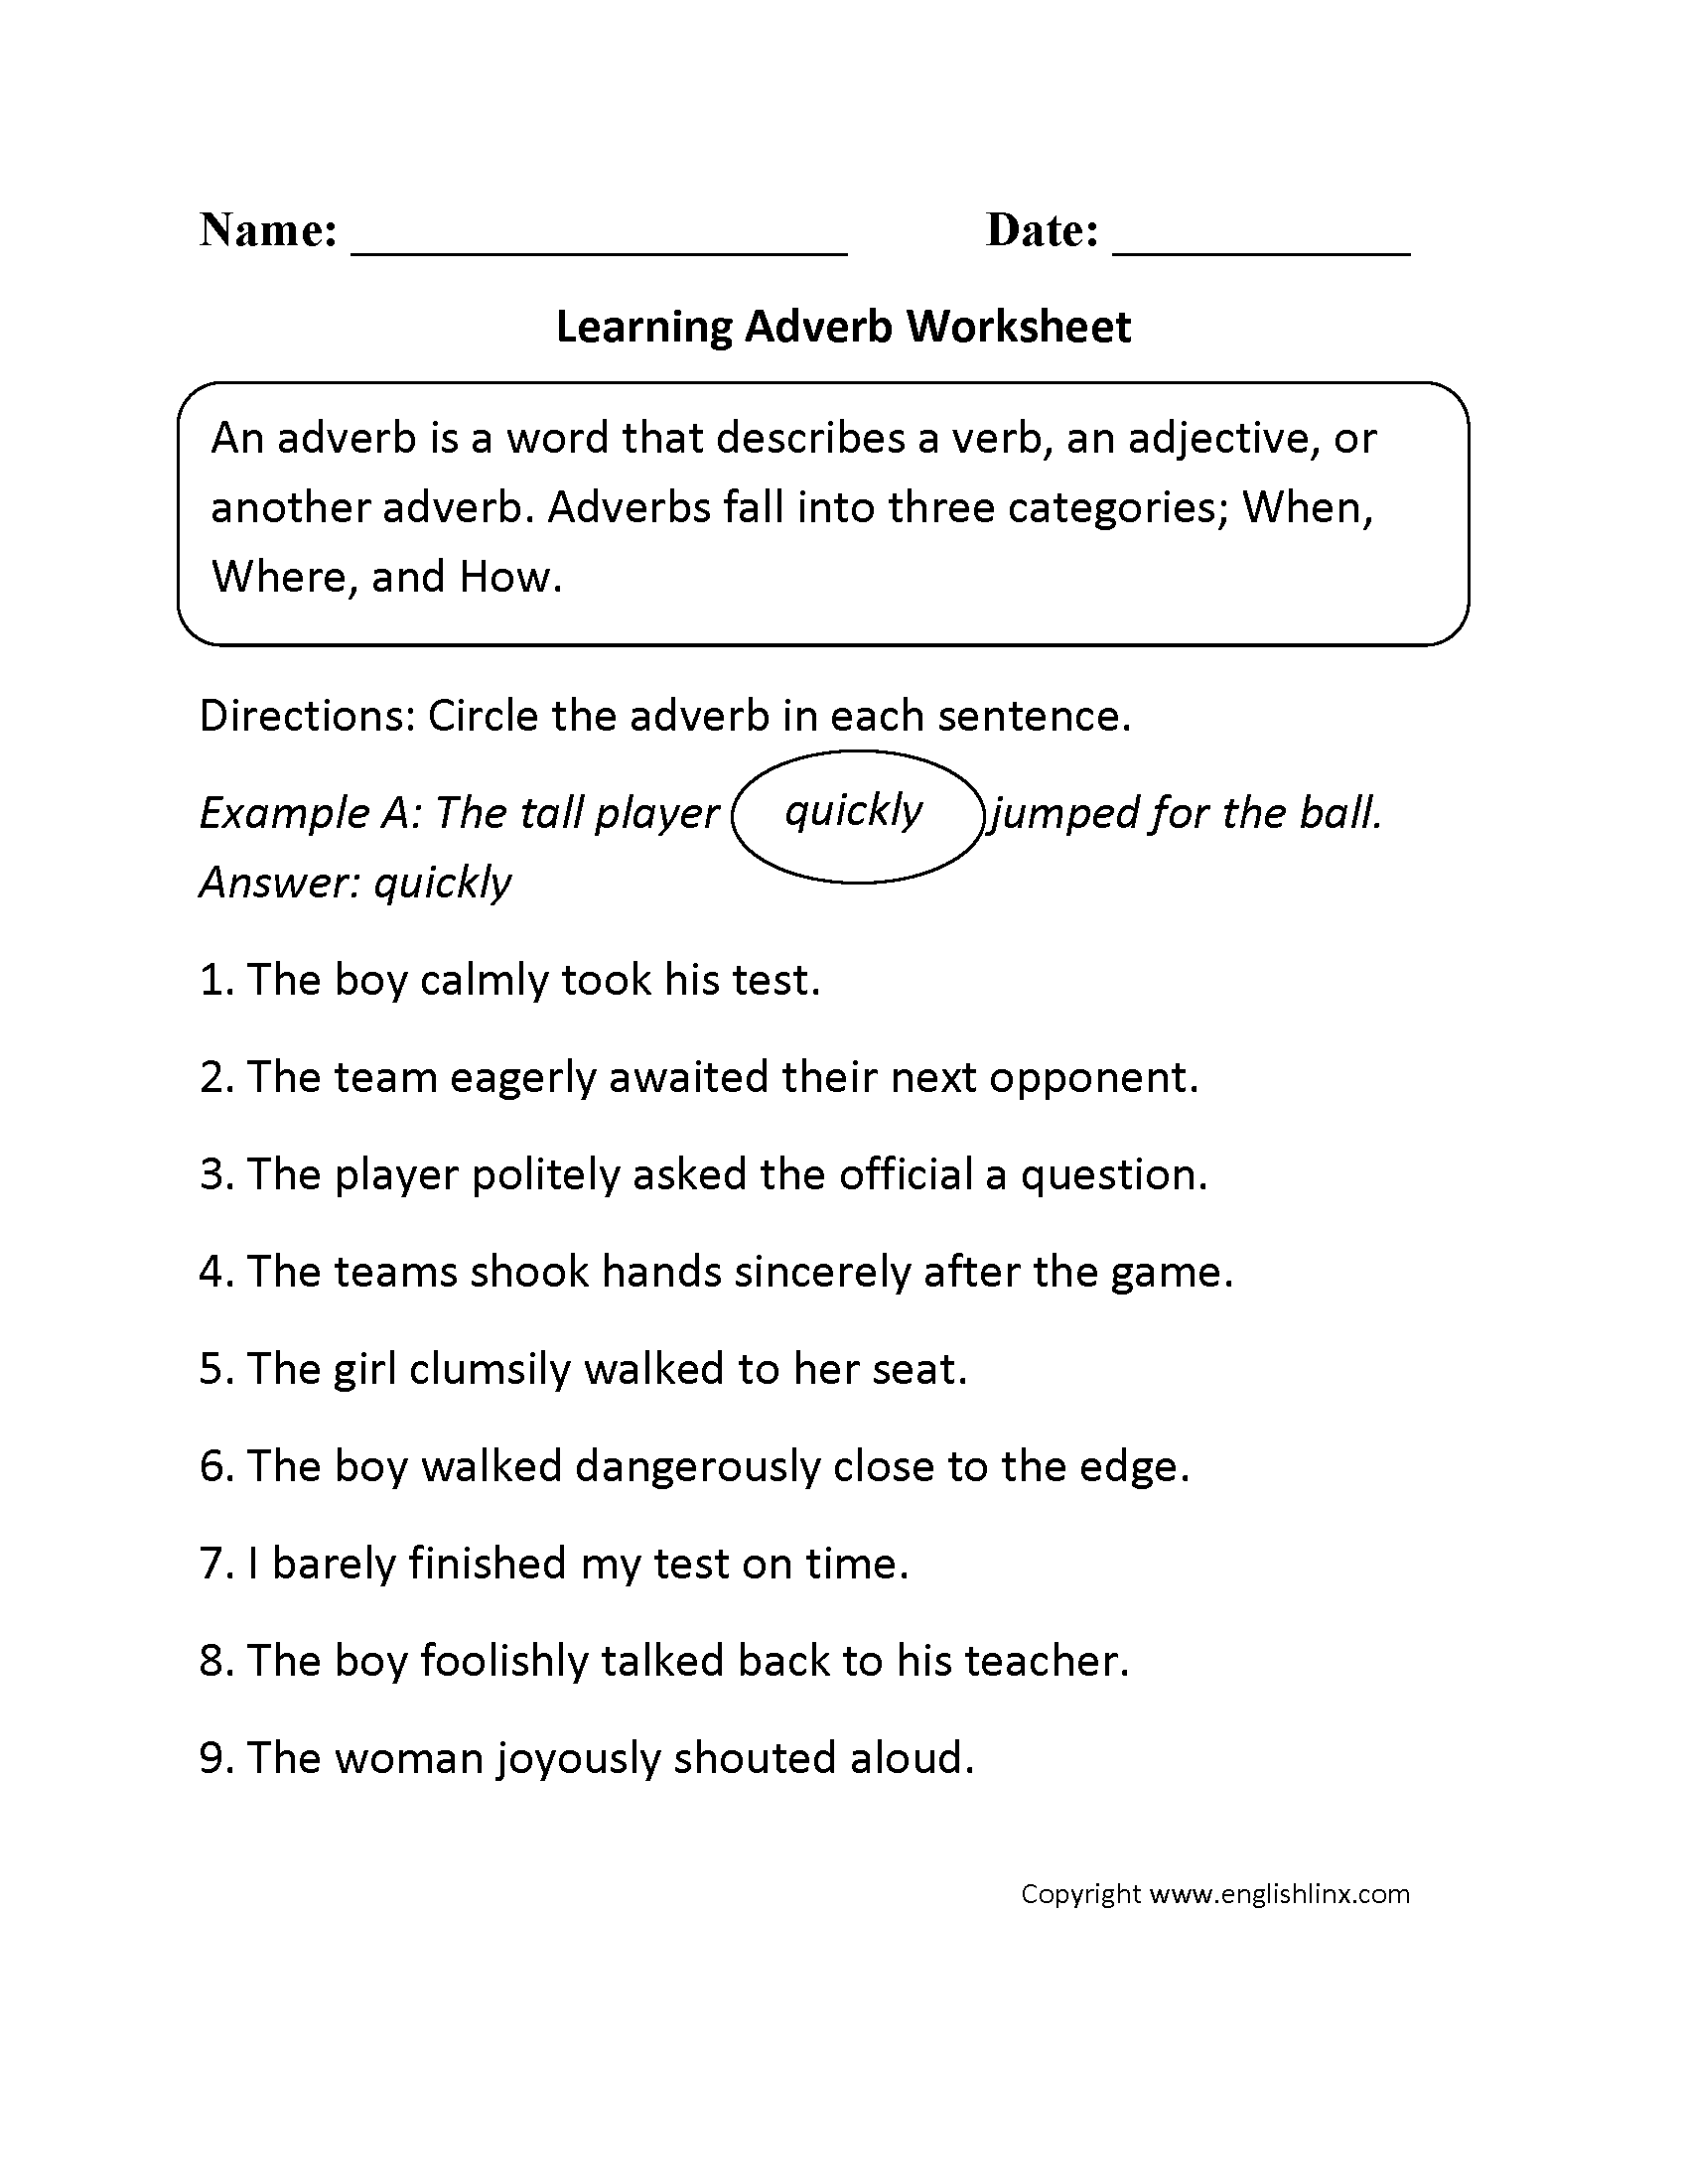 Worksheets Parts Of Speech Worksheet parts speech worksheets adverb worksheets